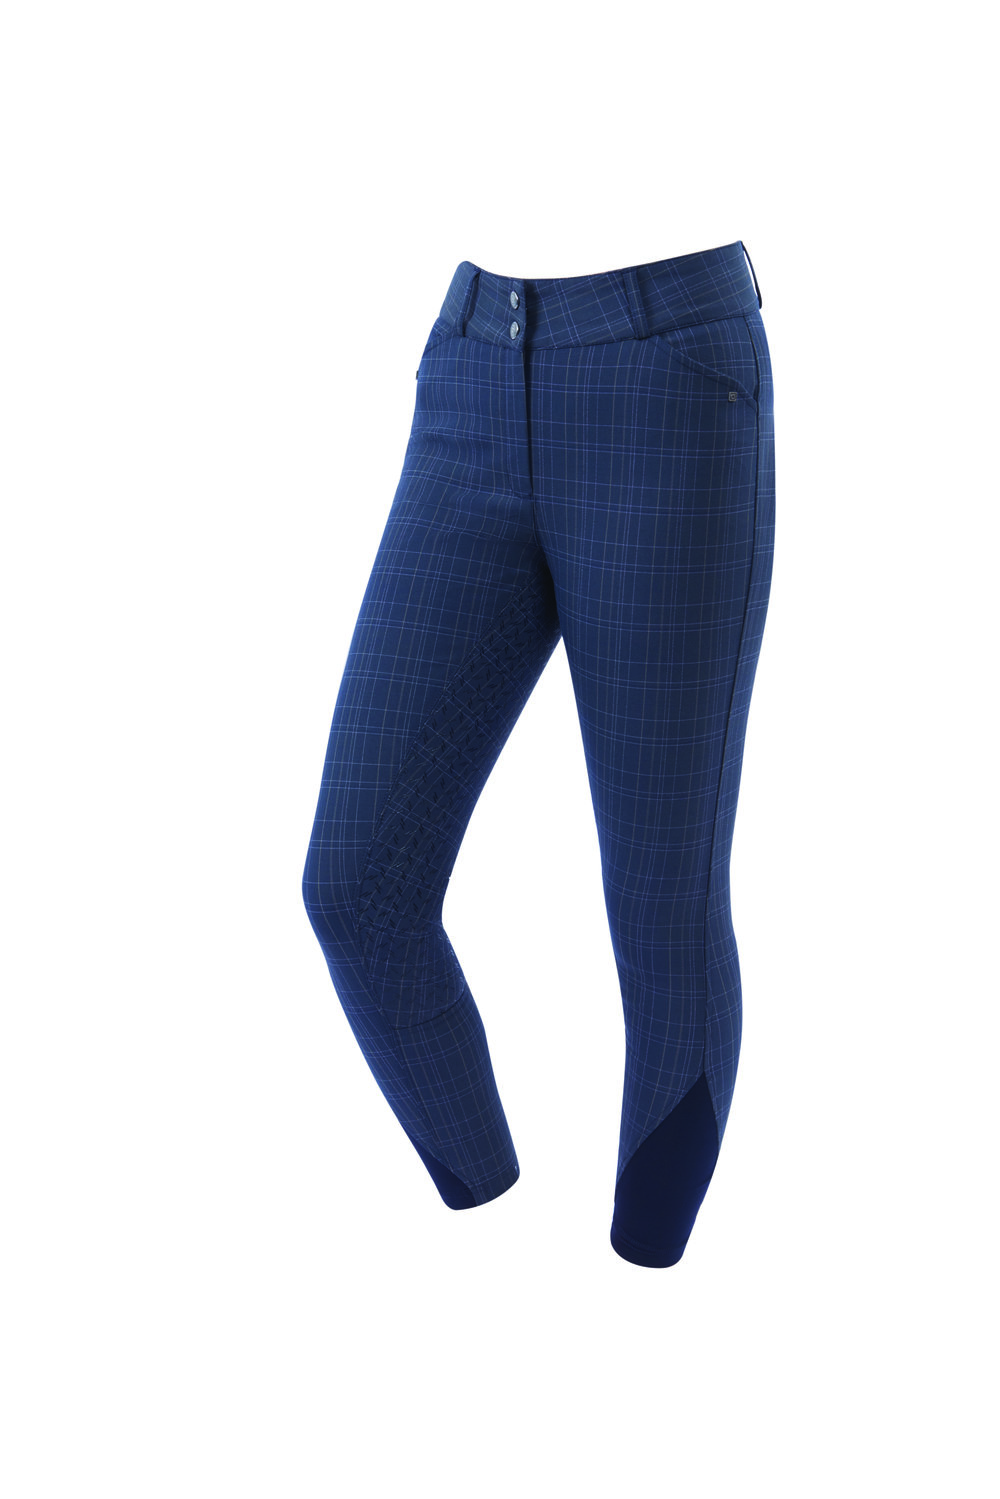 All of the breeches are made from a technical fabric for comfort, style and movement